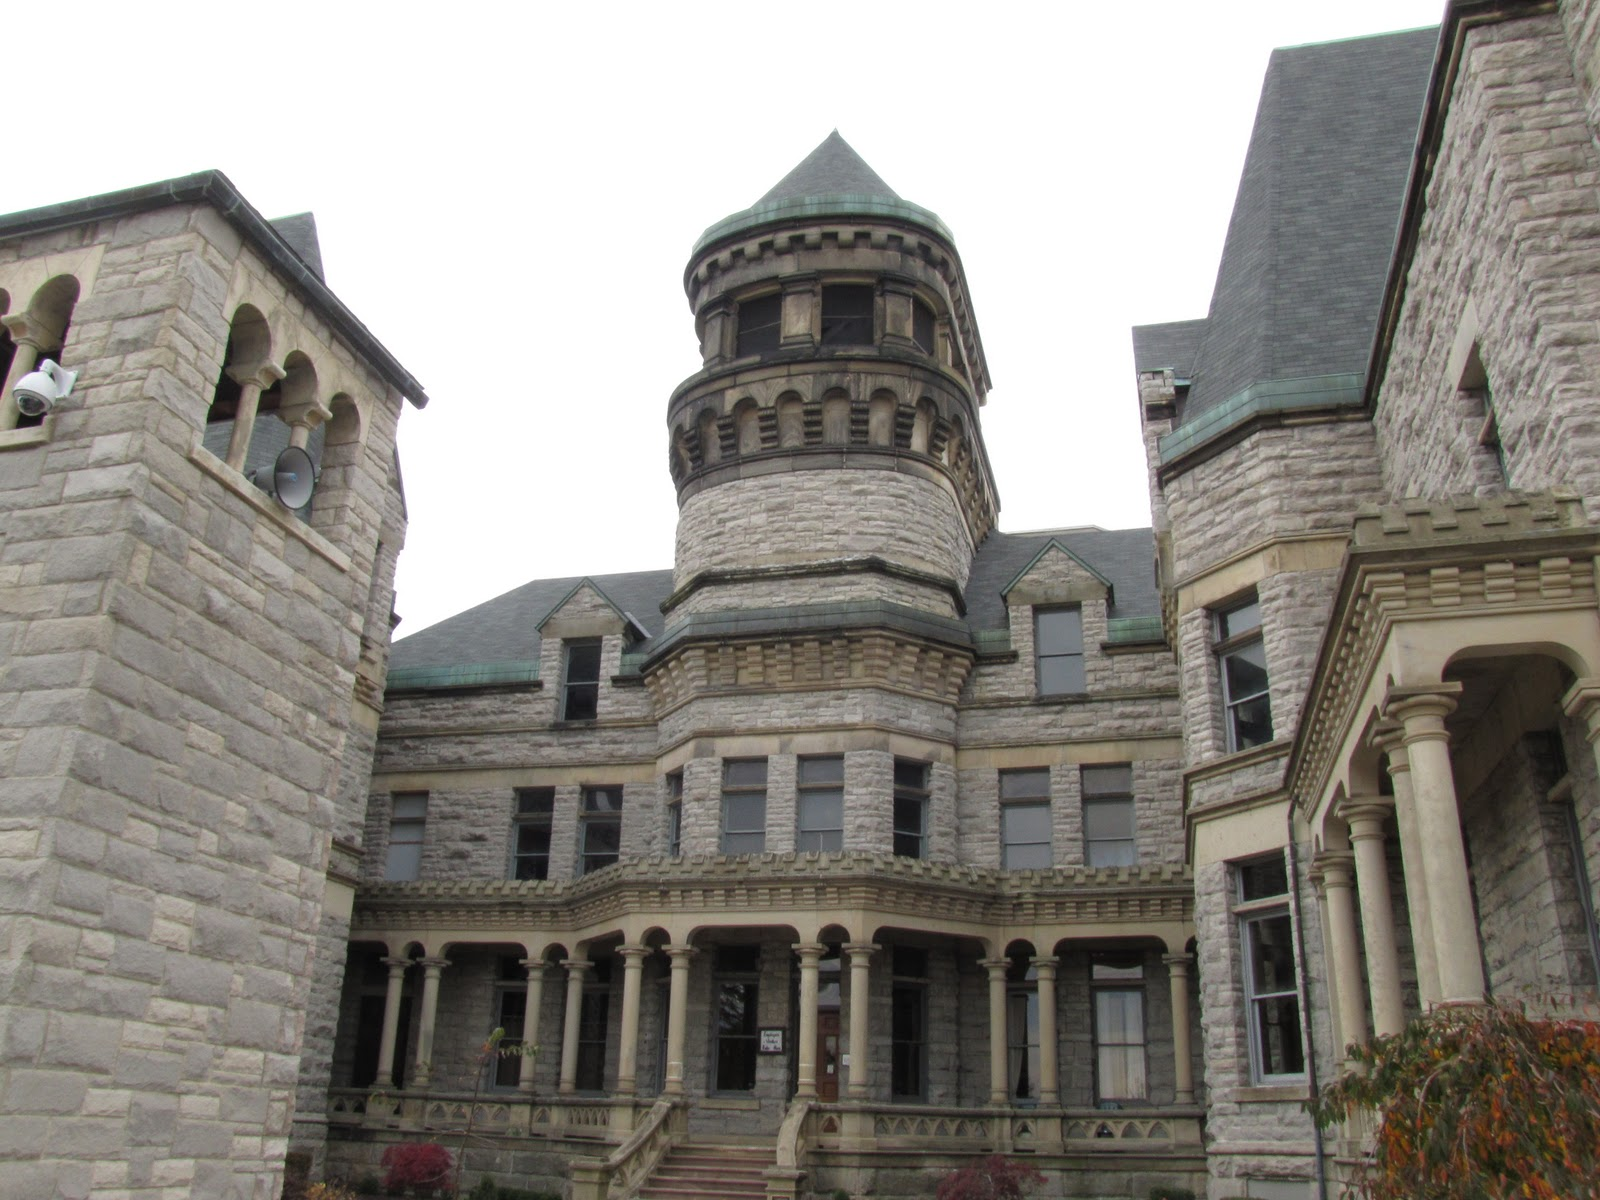 National Paranormal Association Quot Haunted Quot Ohio Prison A